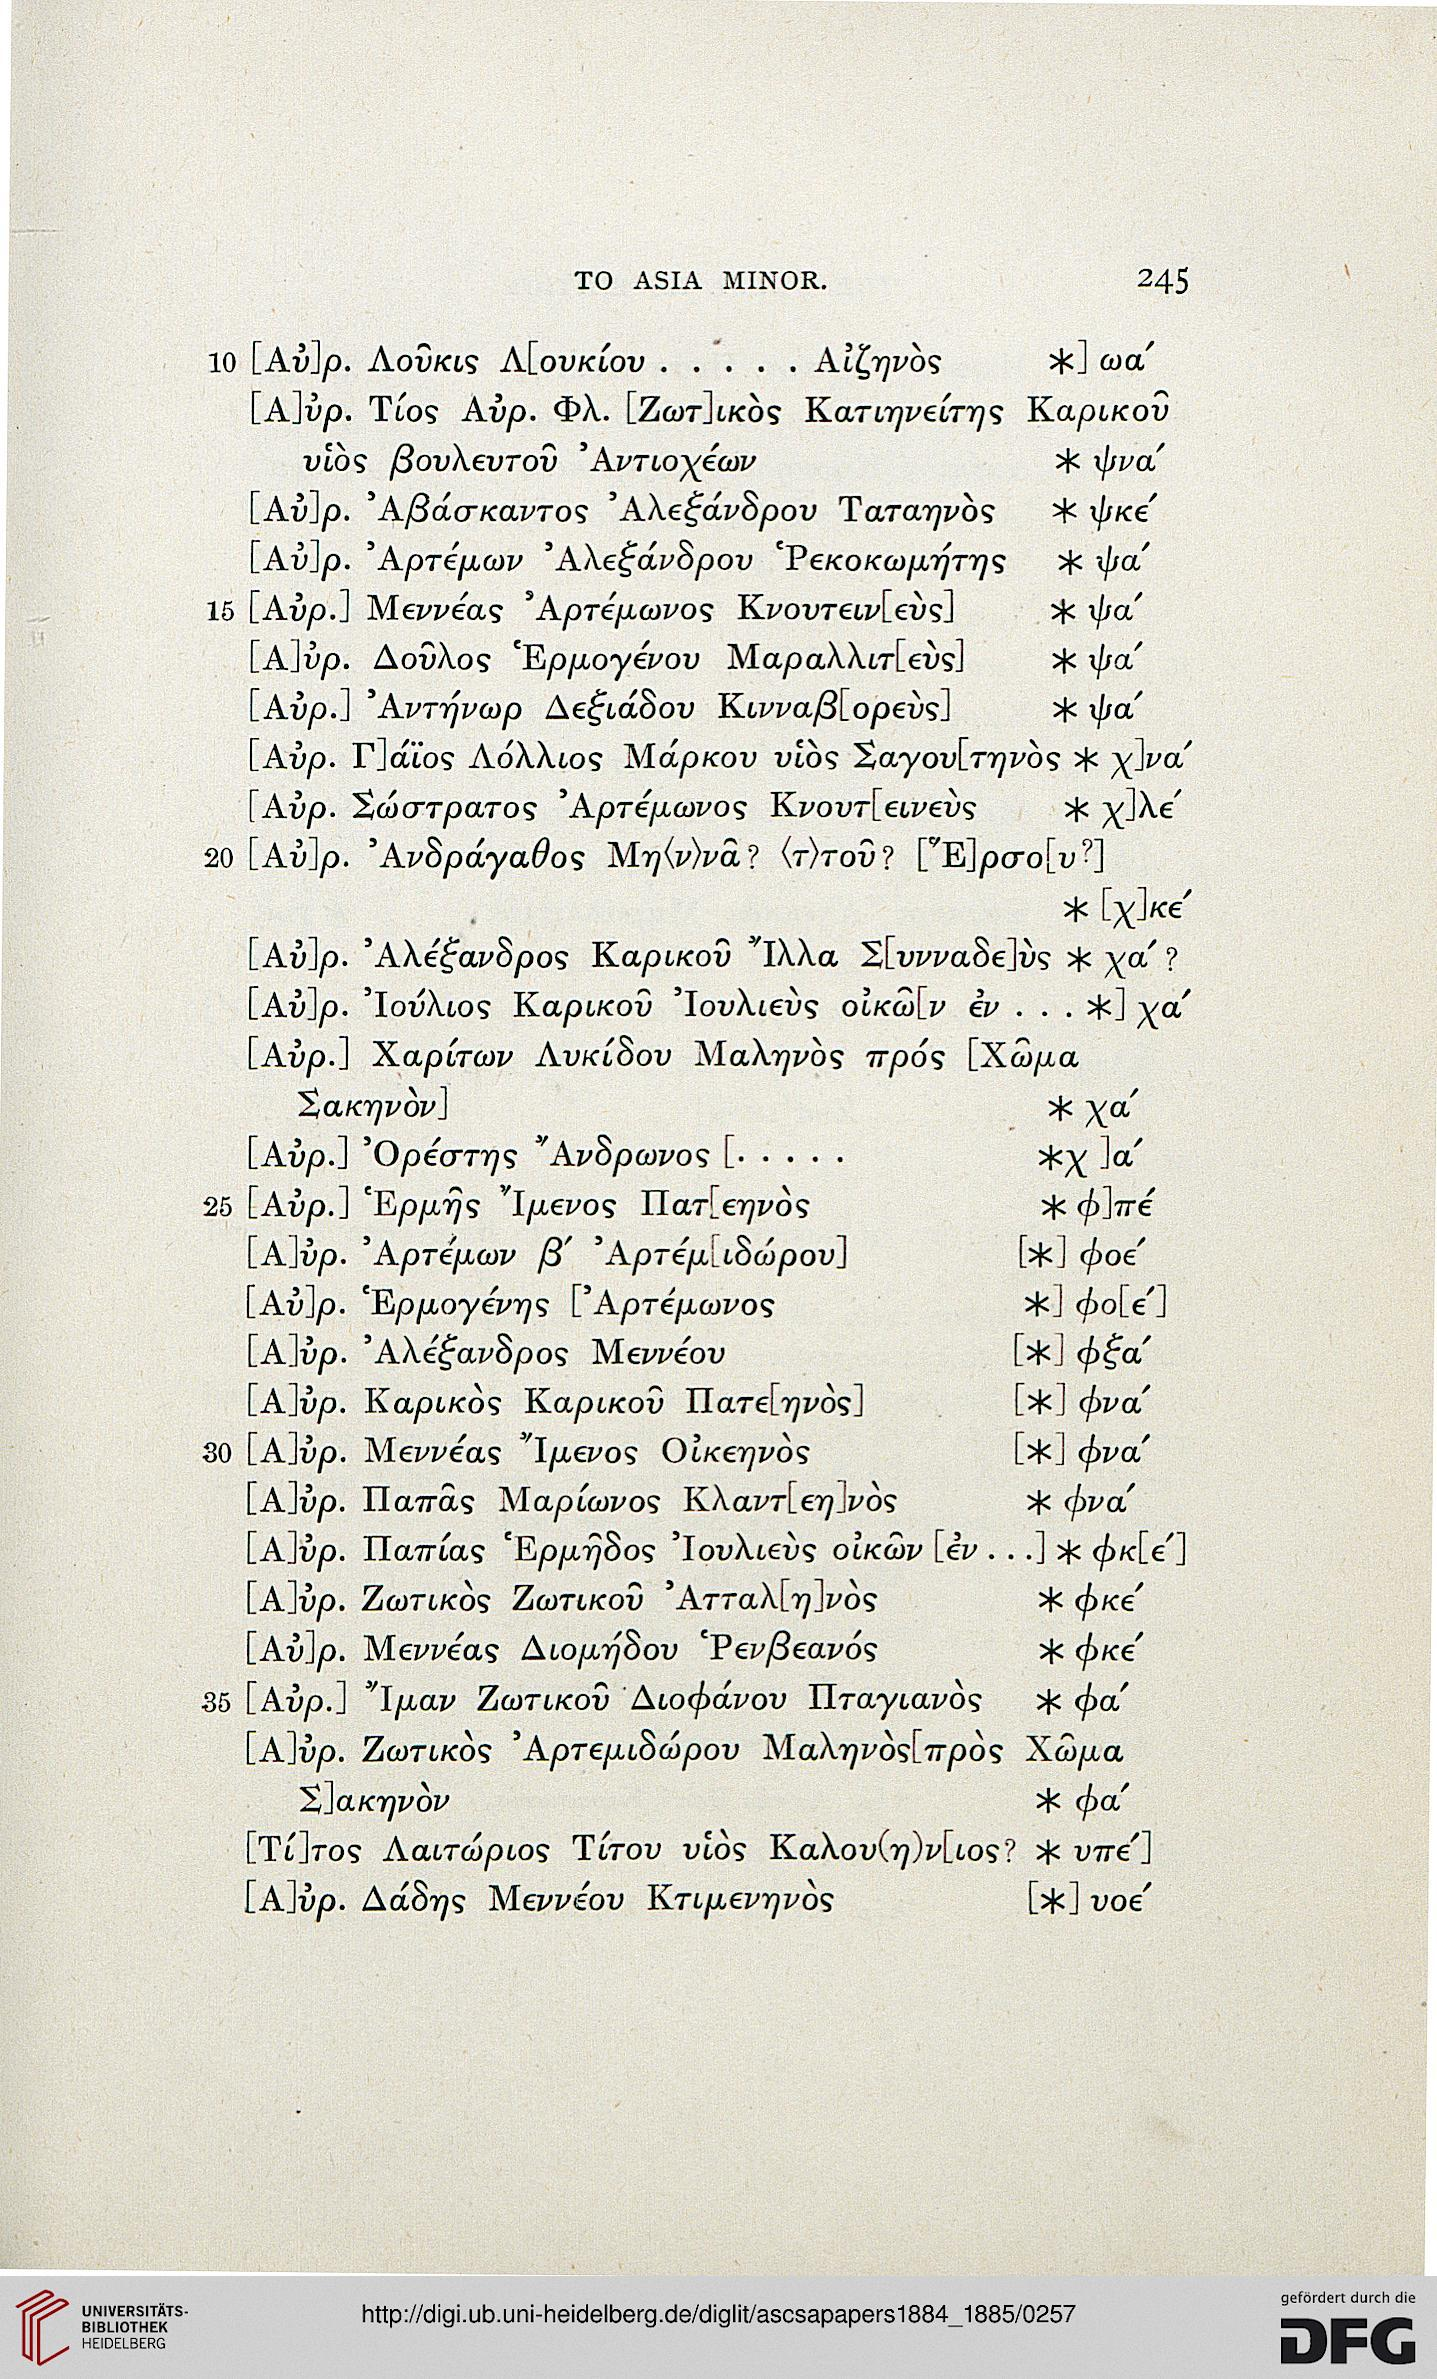 Papers of the American School of Classical Studies at Athens (3 1884